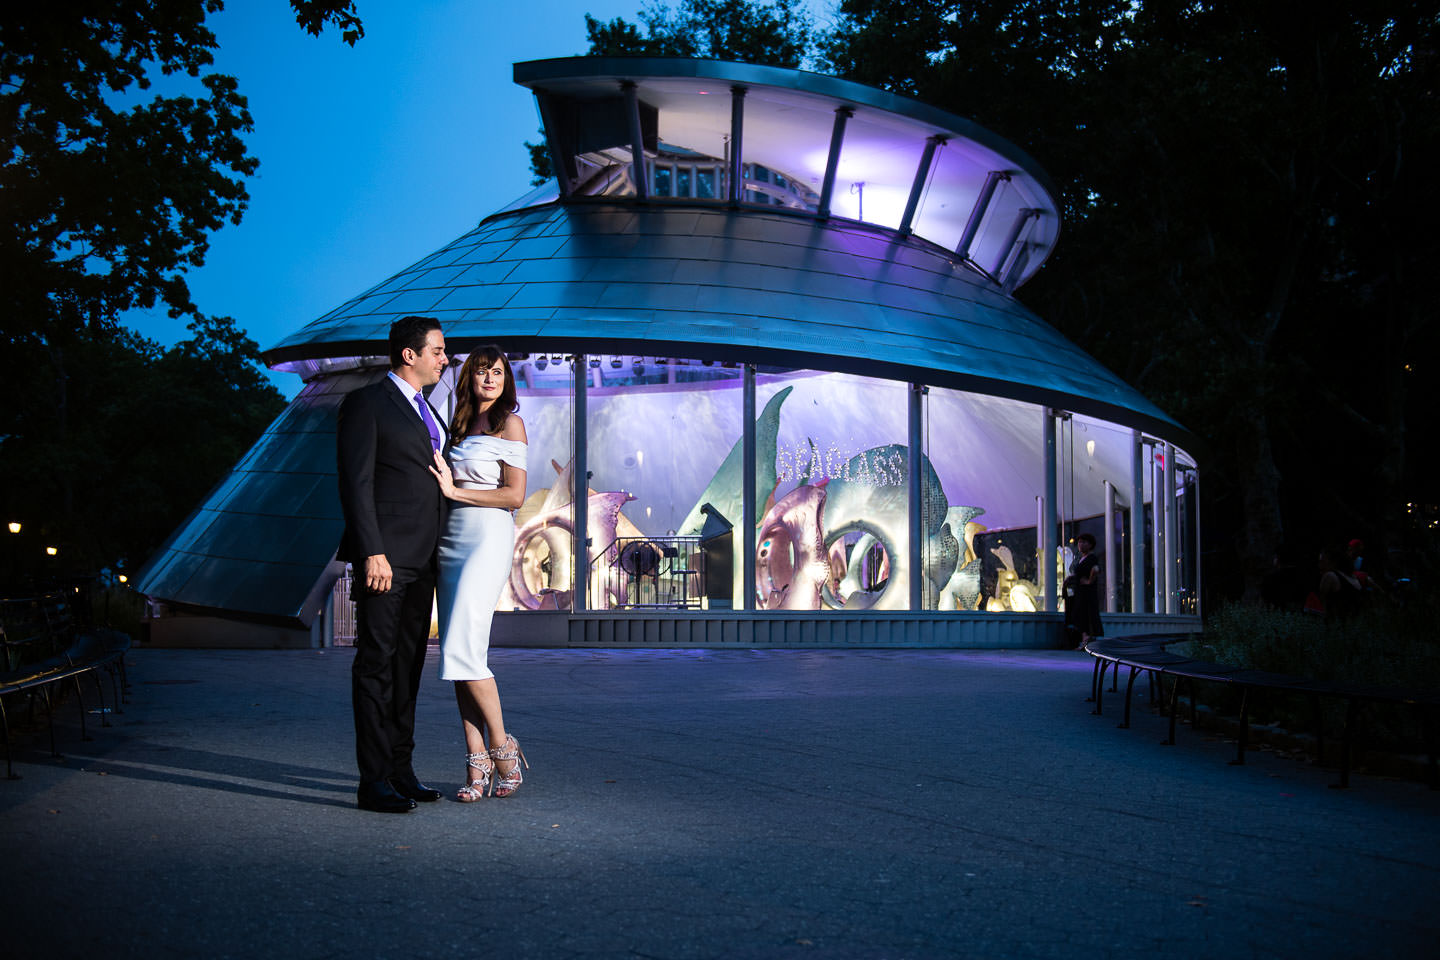 engaged couple at seaglass carousel in downtown manhattan